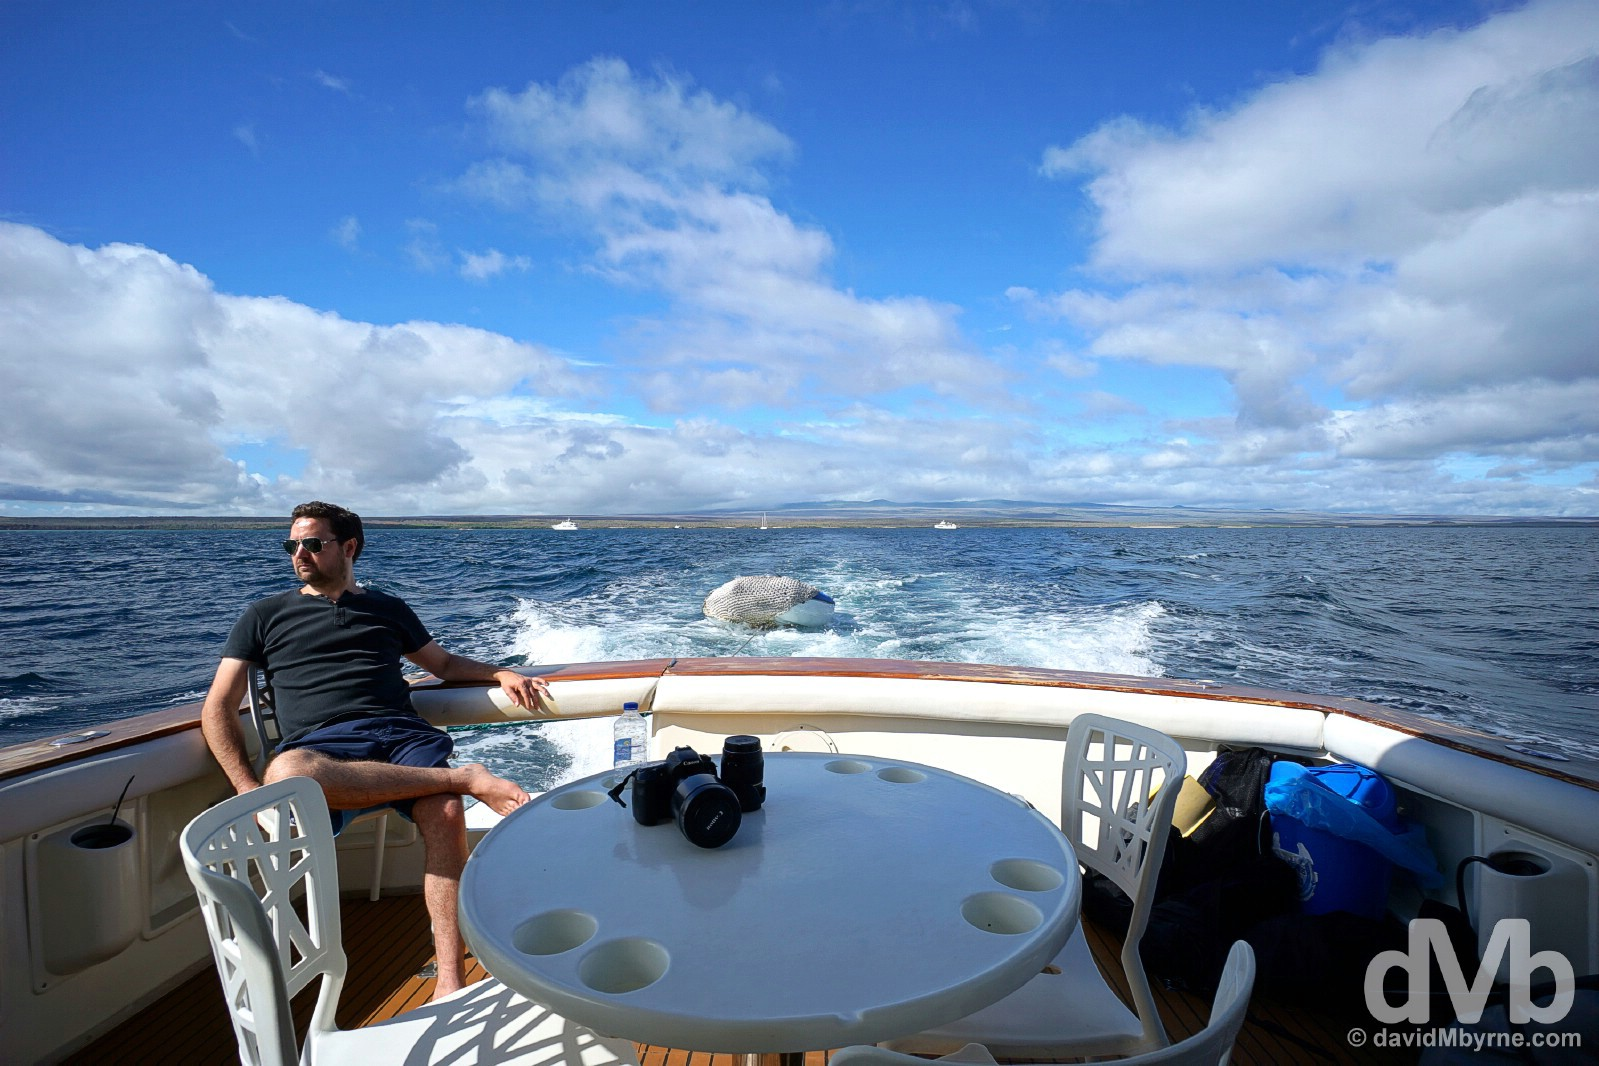 On board the Altamar en route from Isla Santa Cruz to Isla Seymour Norte. Galapagos, Ecuador. July 18, 2015.